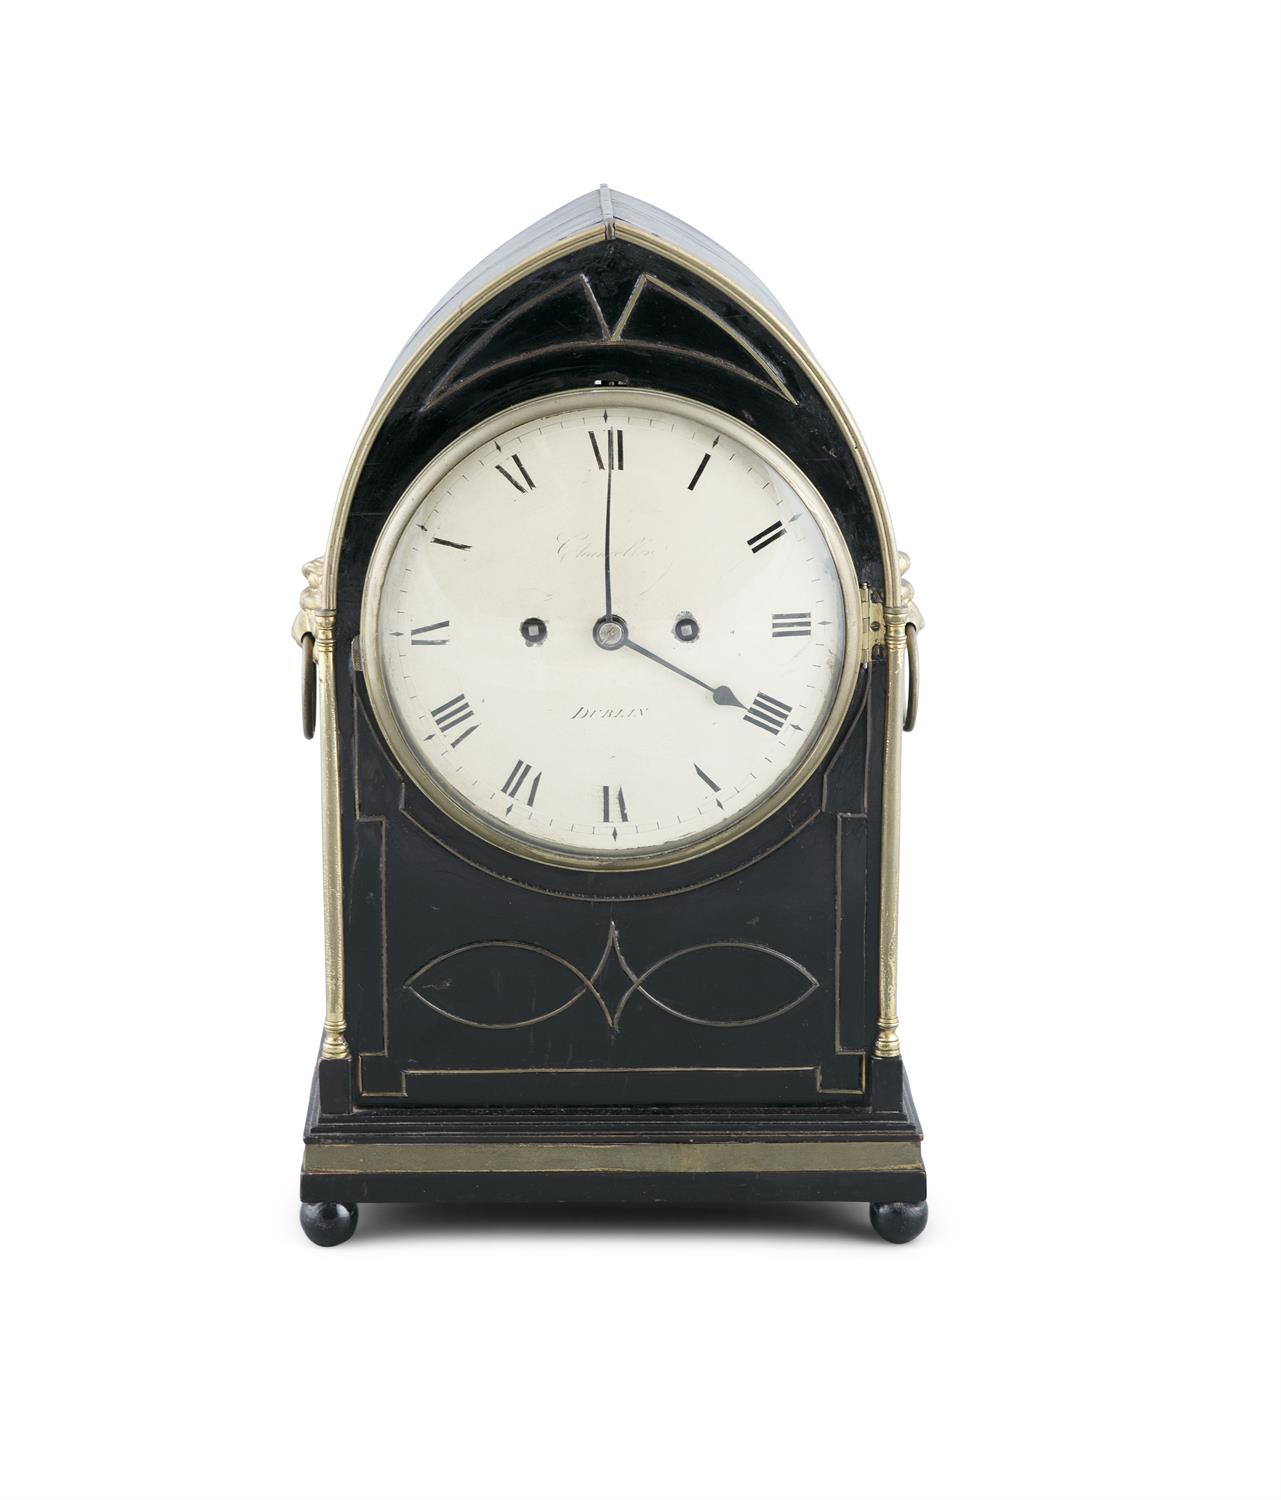 AN IRISH EBONISED MANTLE CLOCK, by Chancellor, Dublin, of arched shape, the body with lion mask